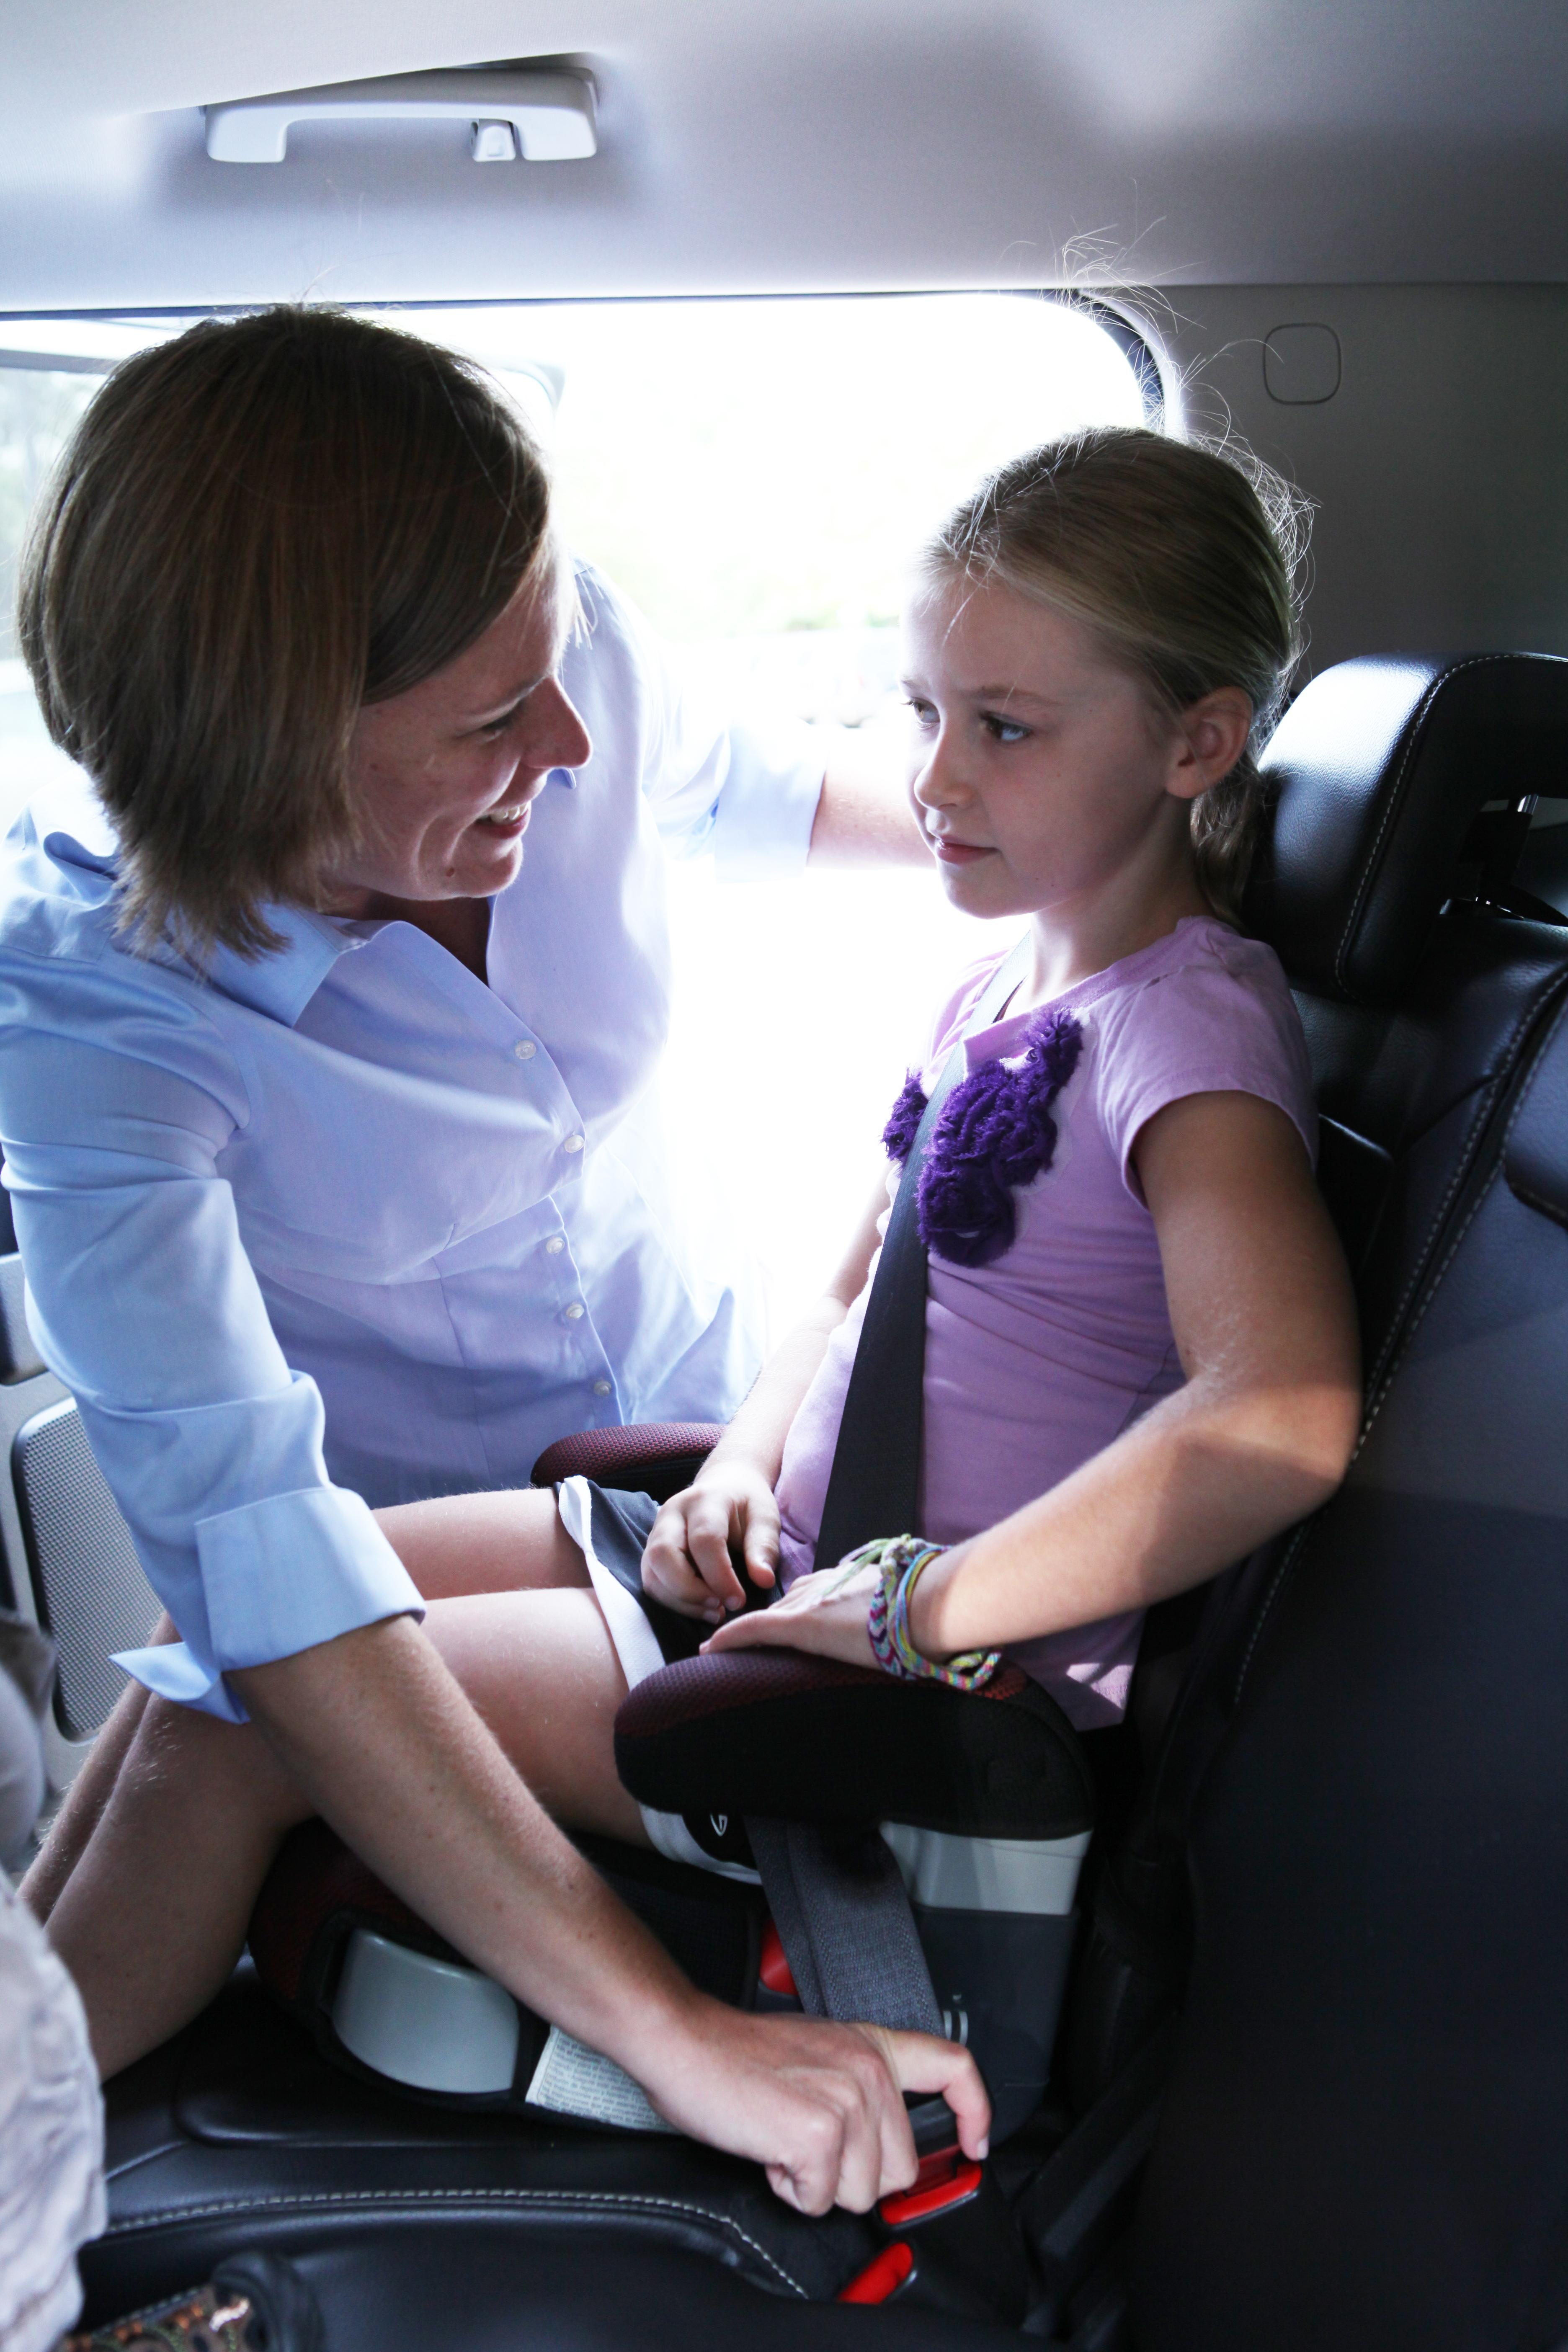 Michelle Macy, M.D., buckles child into car seat.